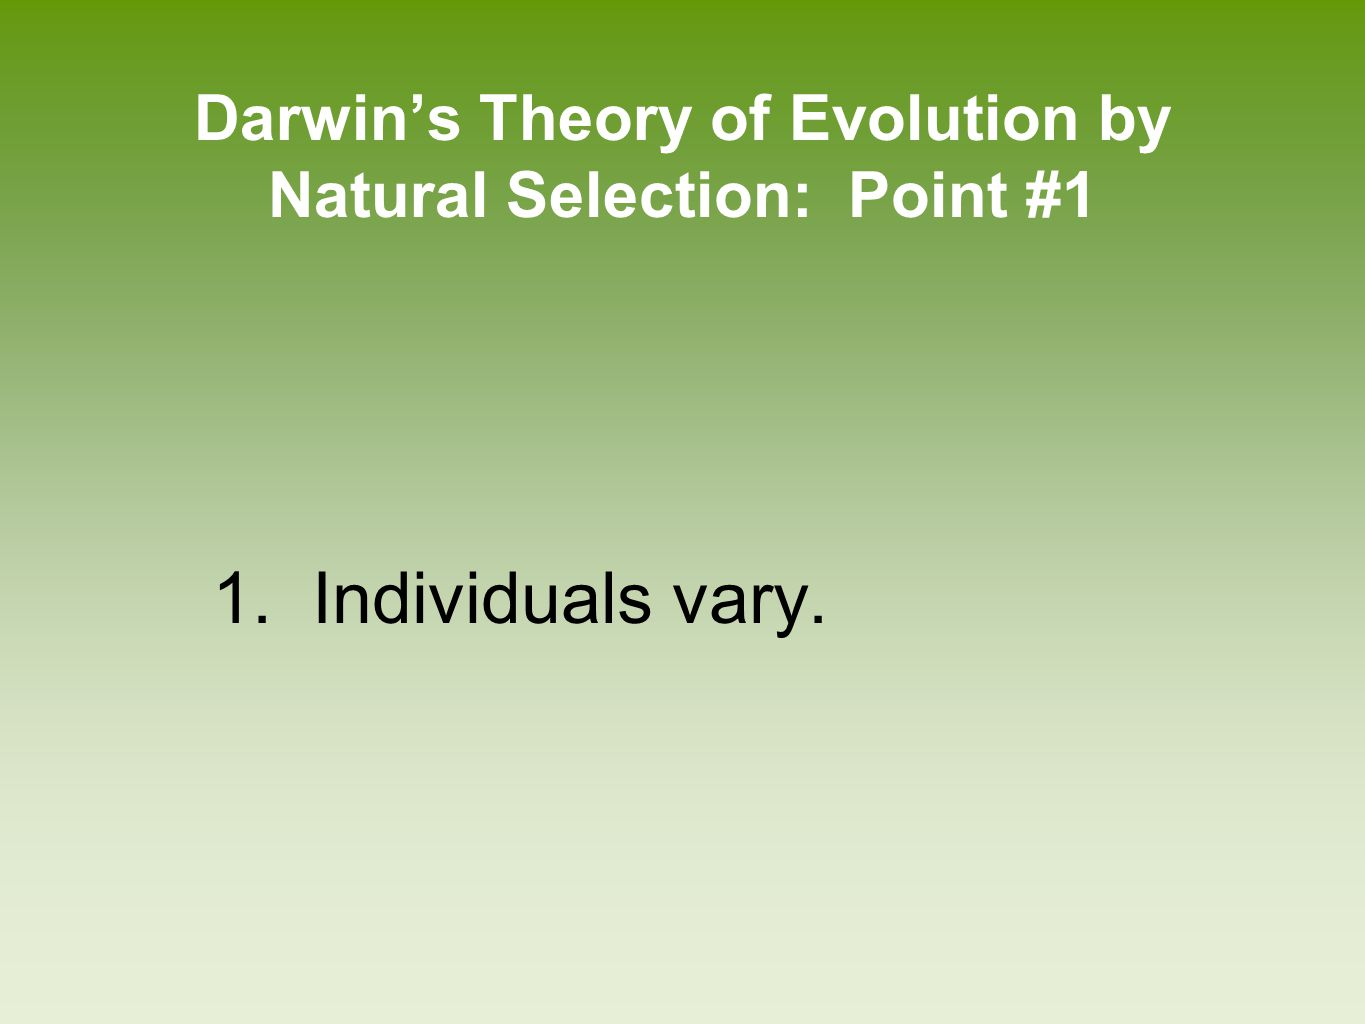 Darwin's Theory of Evolution by Natural Selection: Point #1